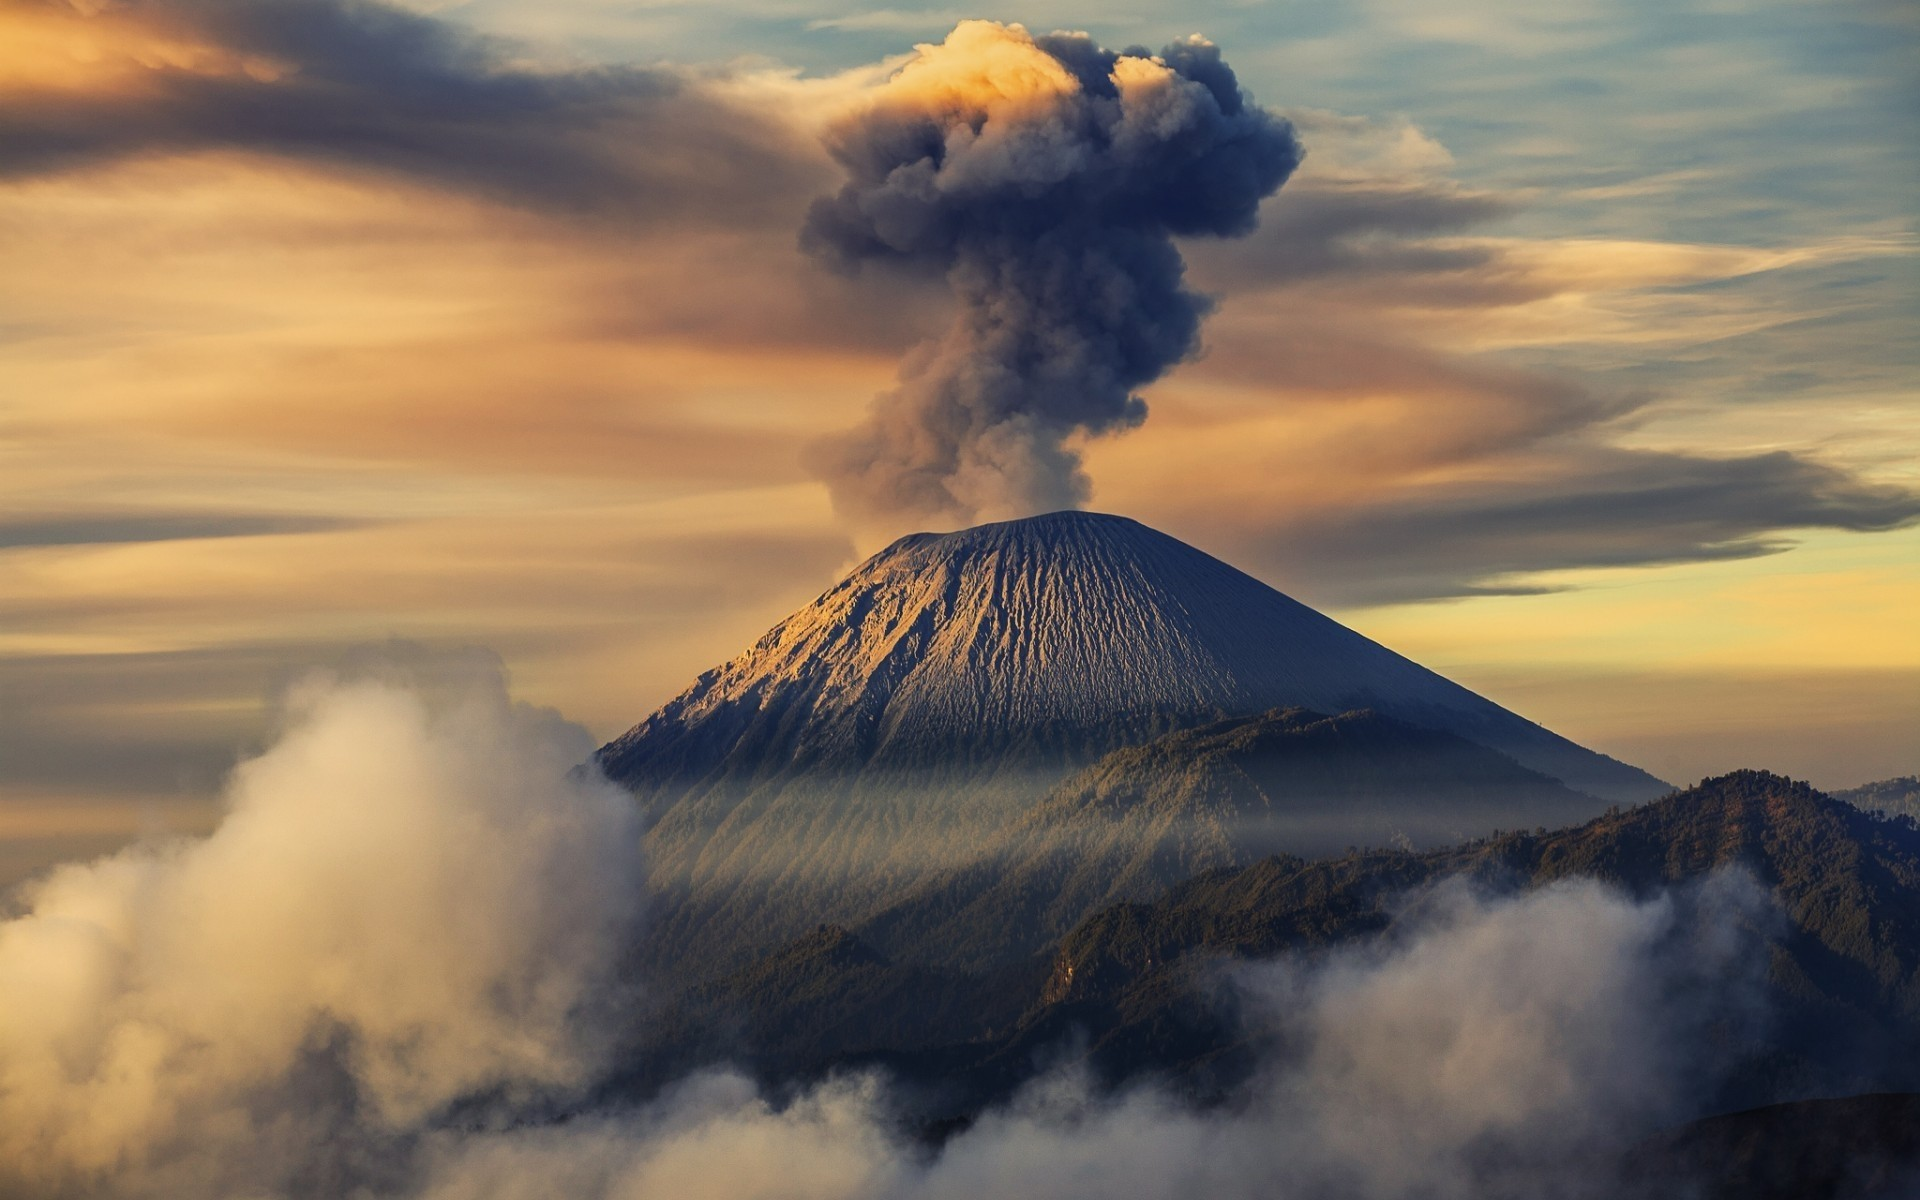 volcanoes Some of the volcanoes that currently show signs of unrest may simply calm down without eruption, while others may enter a phase of eruption in the months to come.